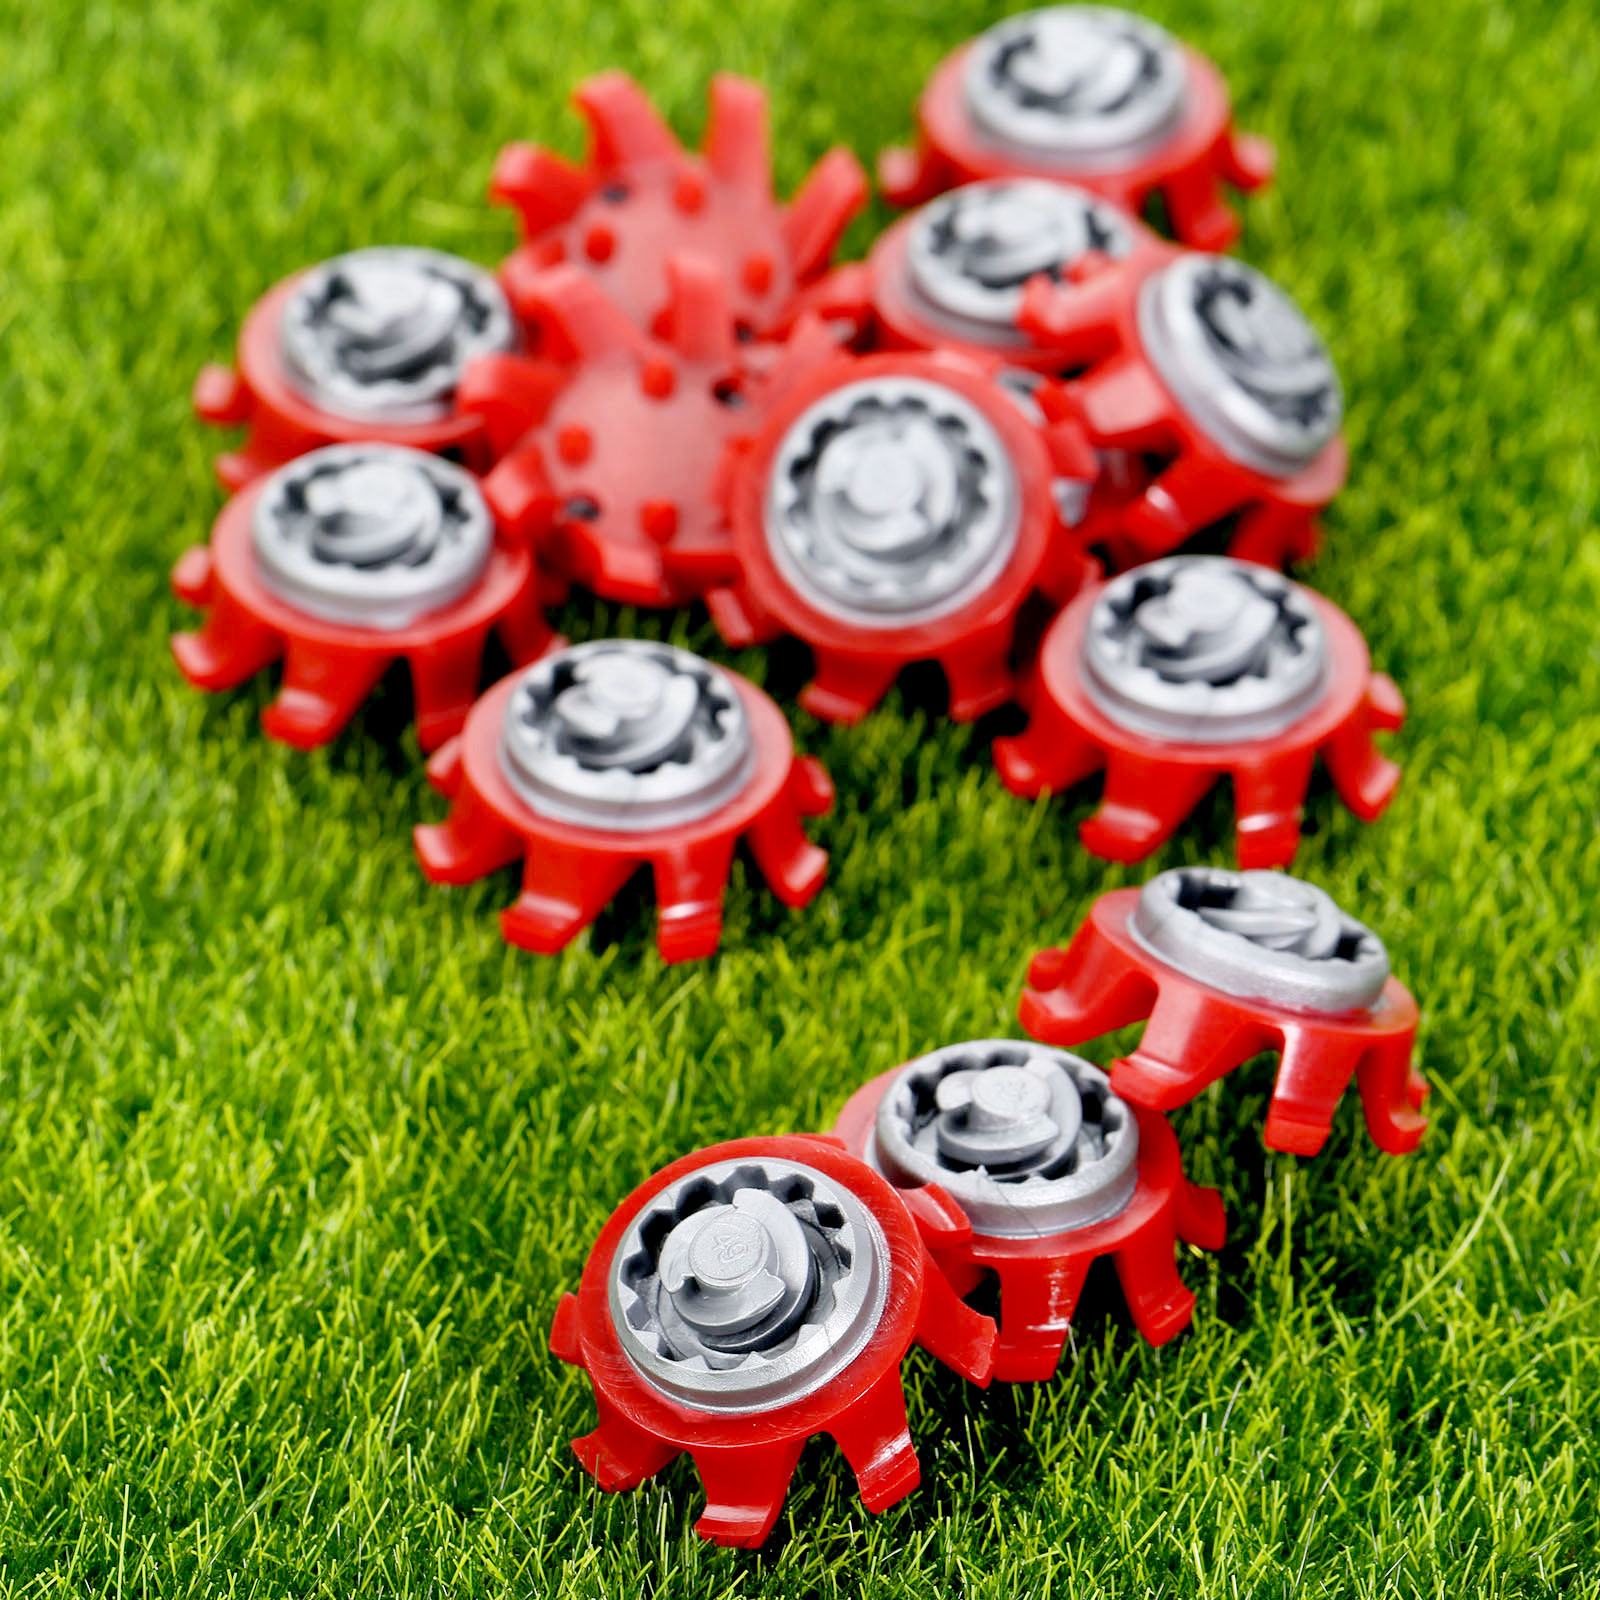 14Pcs TPR Golf Shoe Spikes Replacement Champ Cleats Pins Fast Twist Turn Screw Studs Stinger Golf Accessories Golf Training Aids